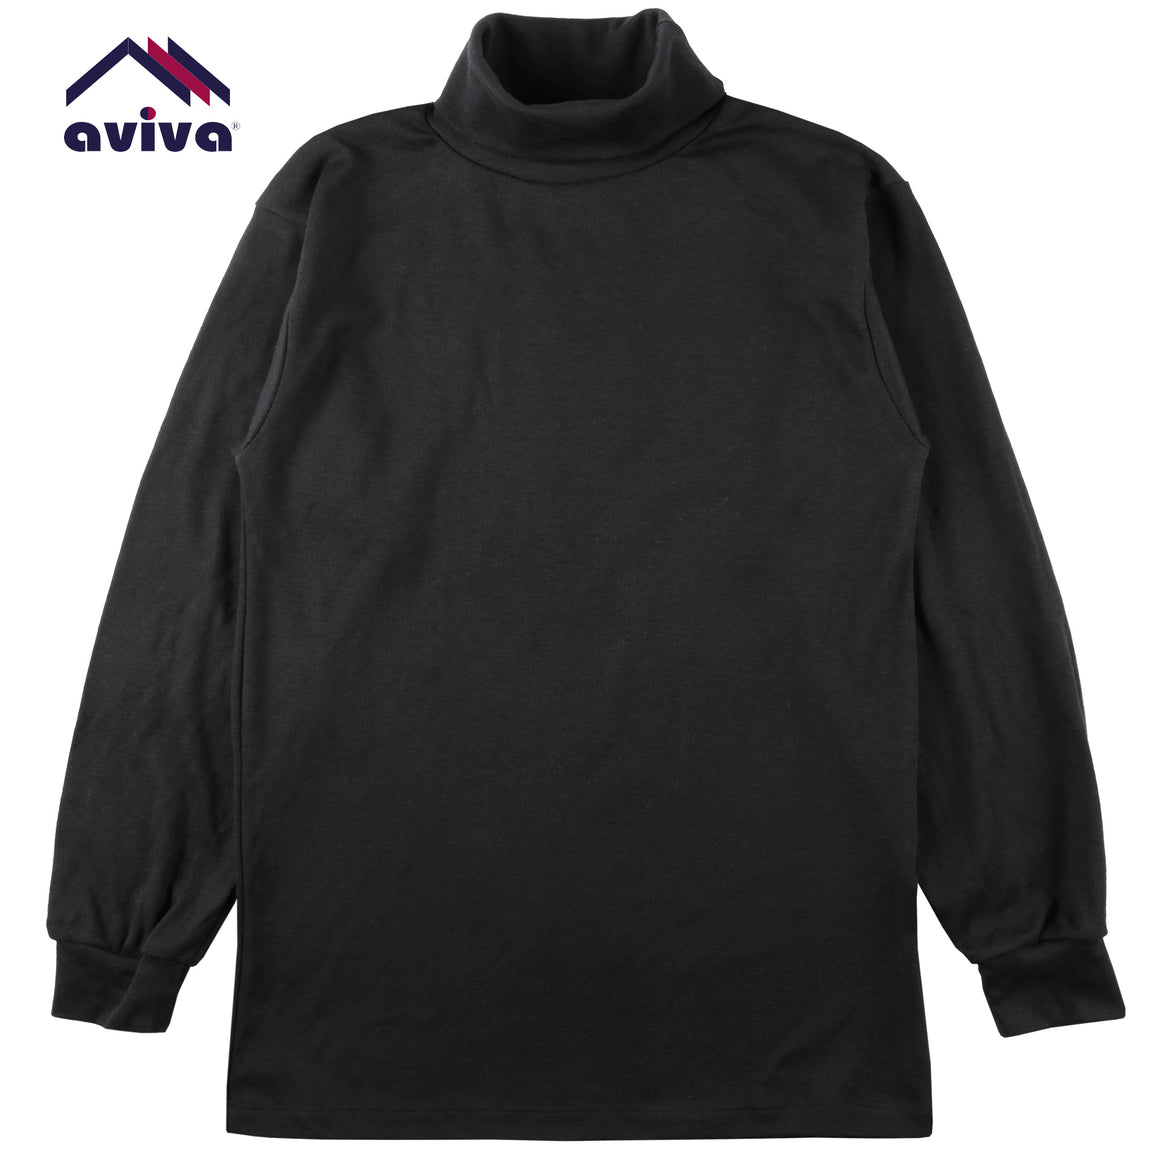 AVIVA Chandail col roulé / Turtle Neck Top